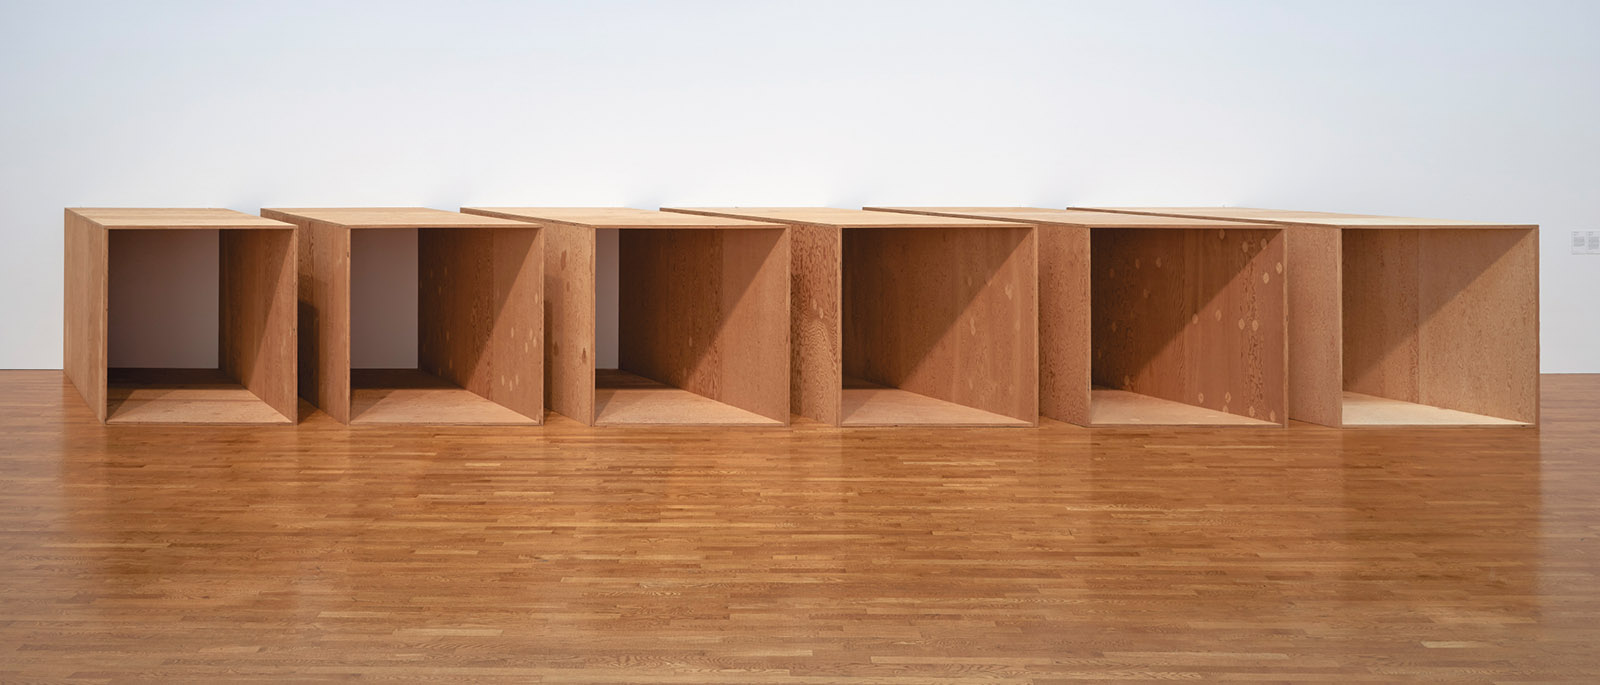 Untitled (DSS 280), plywood, 1973; by Donald Judd